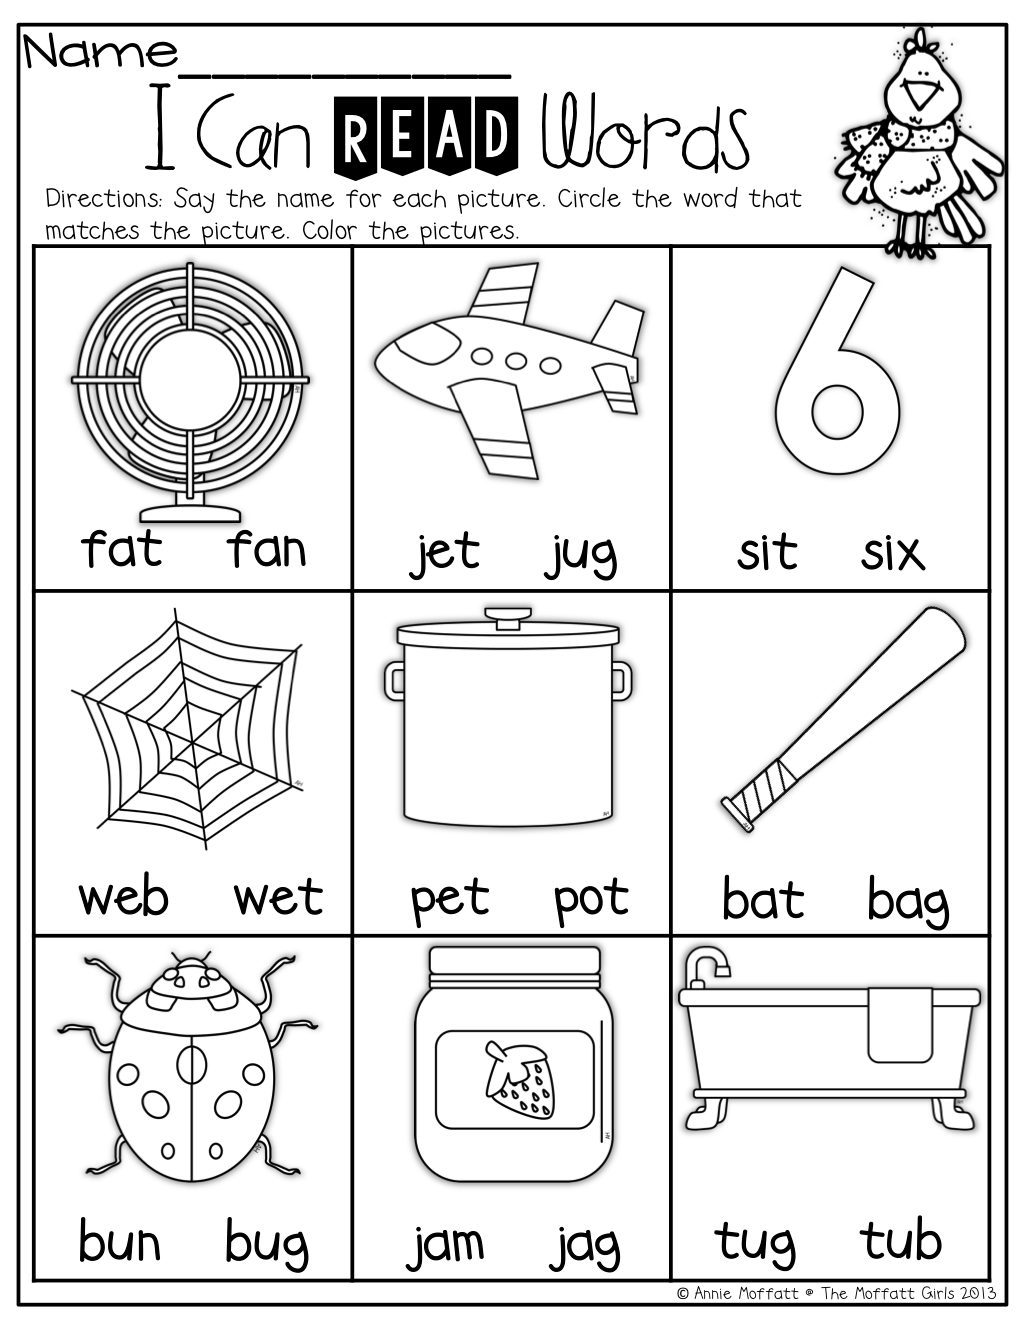 Worksheets Kindergarten Language Arts Worksheets i can read words sped101 pinterest kindergarten literacy and winter math packet kindergarten